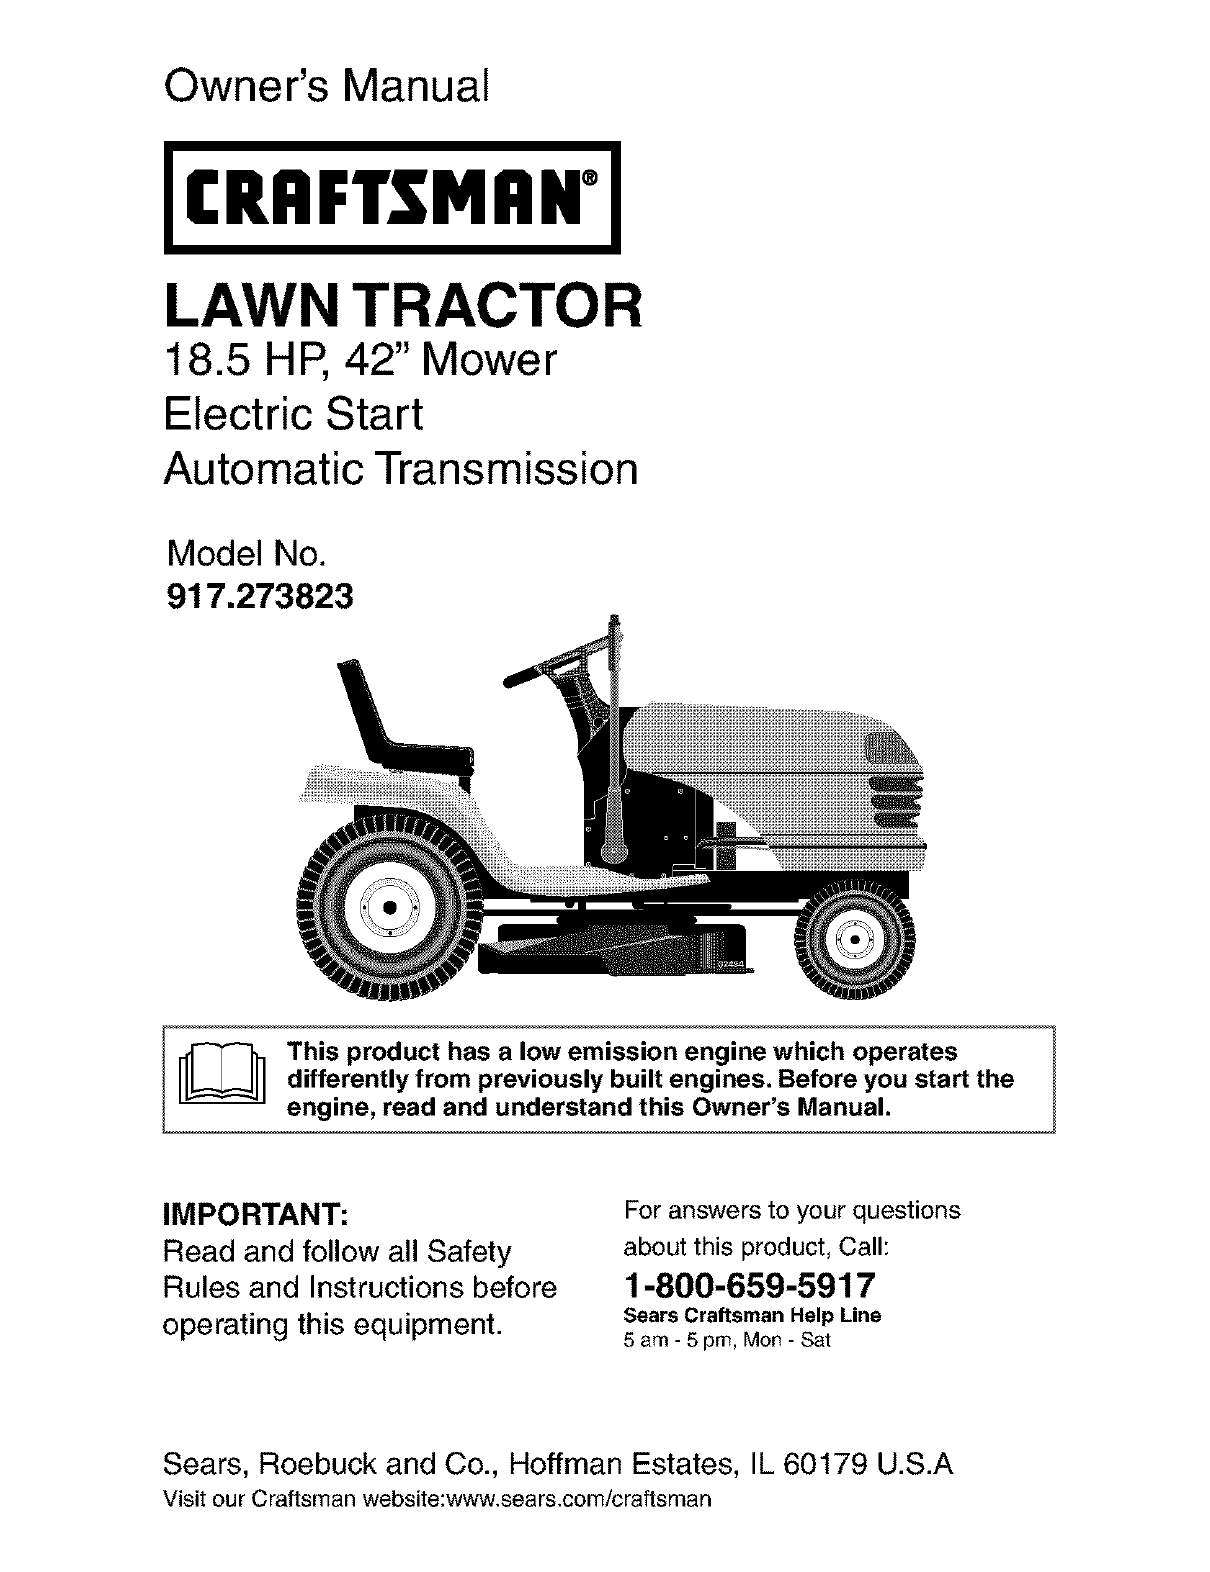 craftsman lawn mower 917 273823 user guide manualsonline com rh phone manualsonline com craftsman owners manual download craftsman owners manual 114a1752